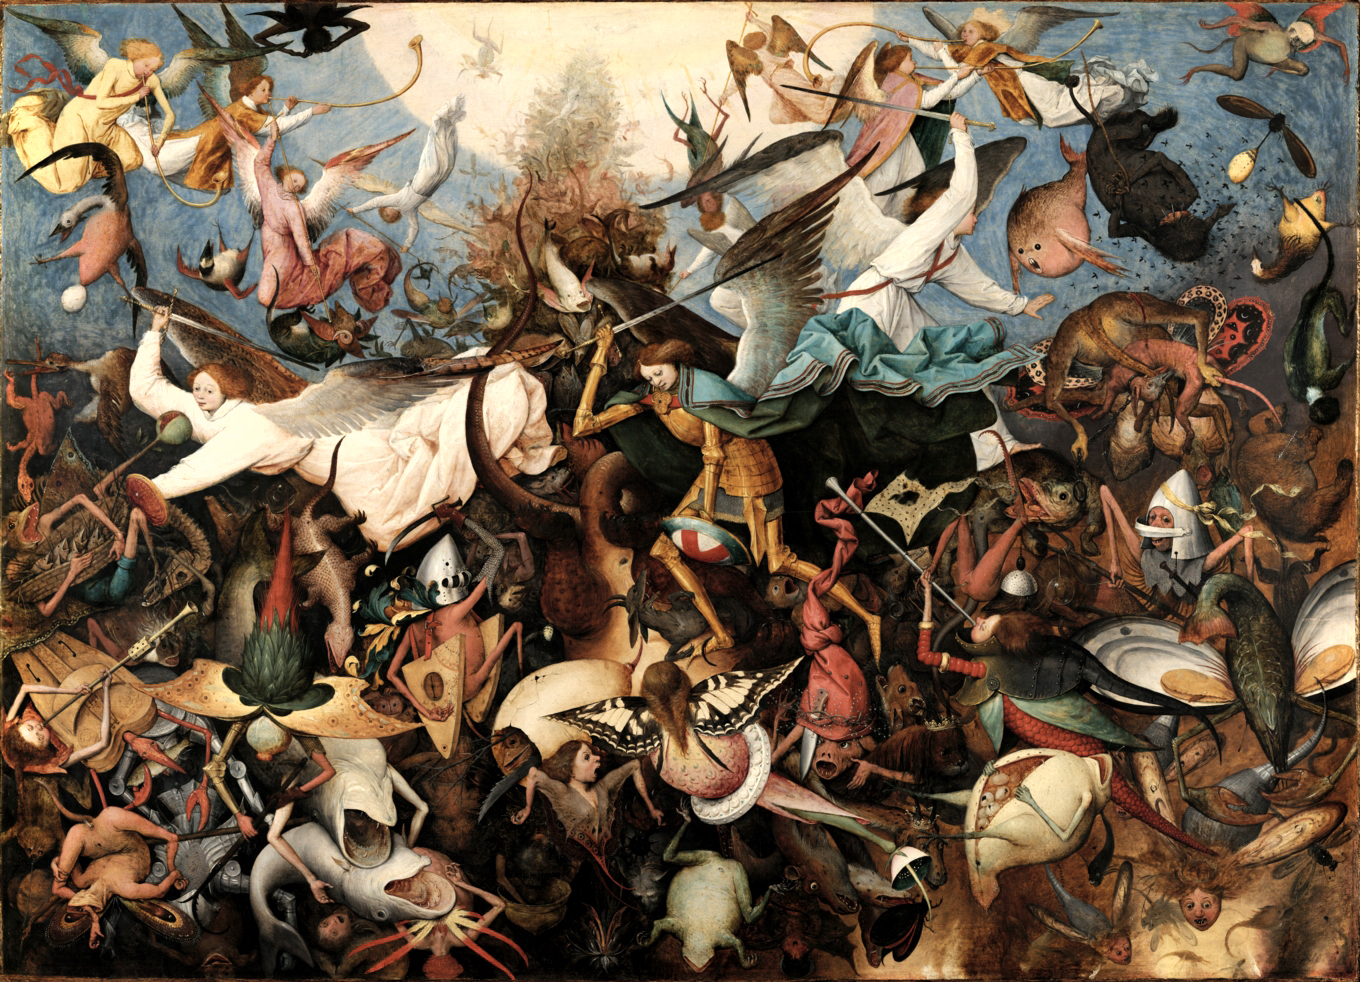 Pieter_Bruegel_the_Elder_-_The_Fall_of_the_Rebel_Angels_-_RMFAB_584_(derivative_work)